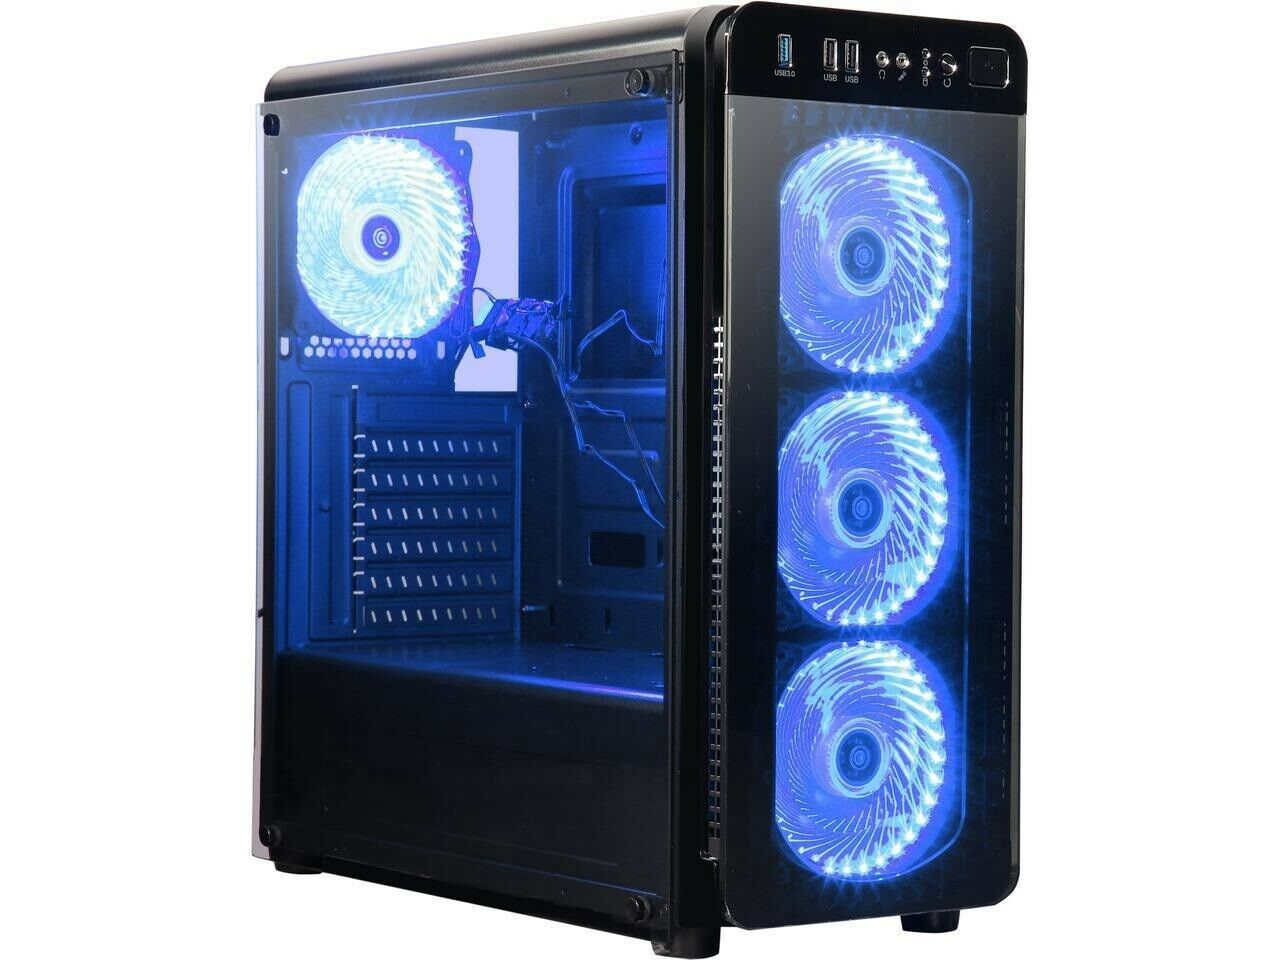 Gaming Desktop Tower NEW GAMING PC Ryzen 8GB AMD Vega GRAPHICS Solid State Drive